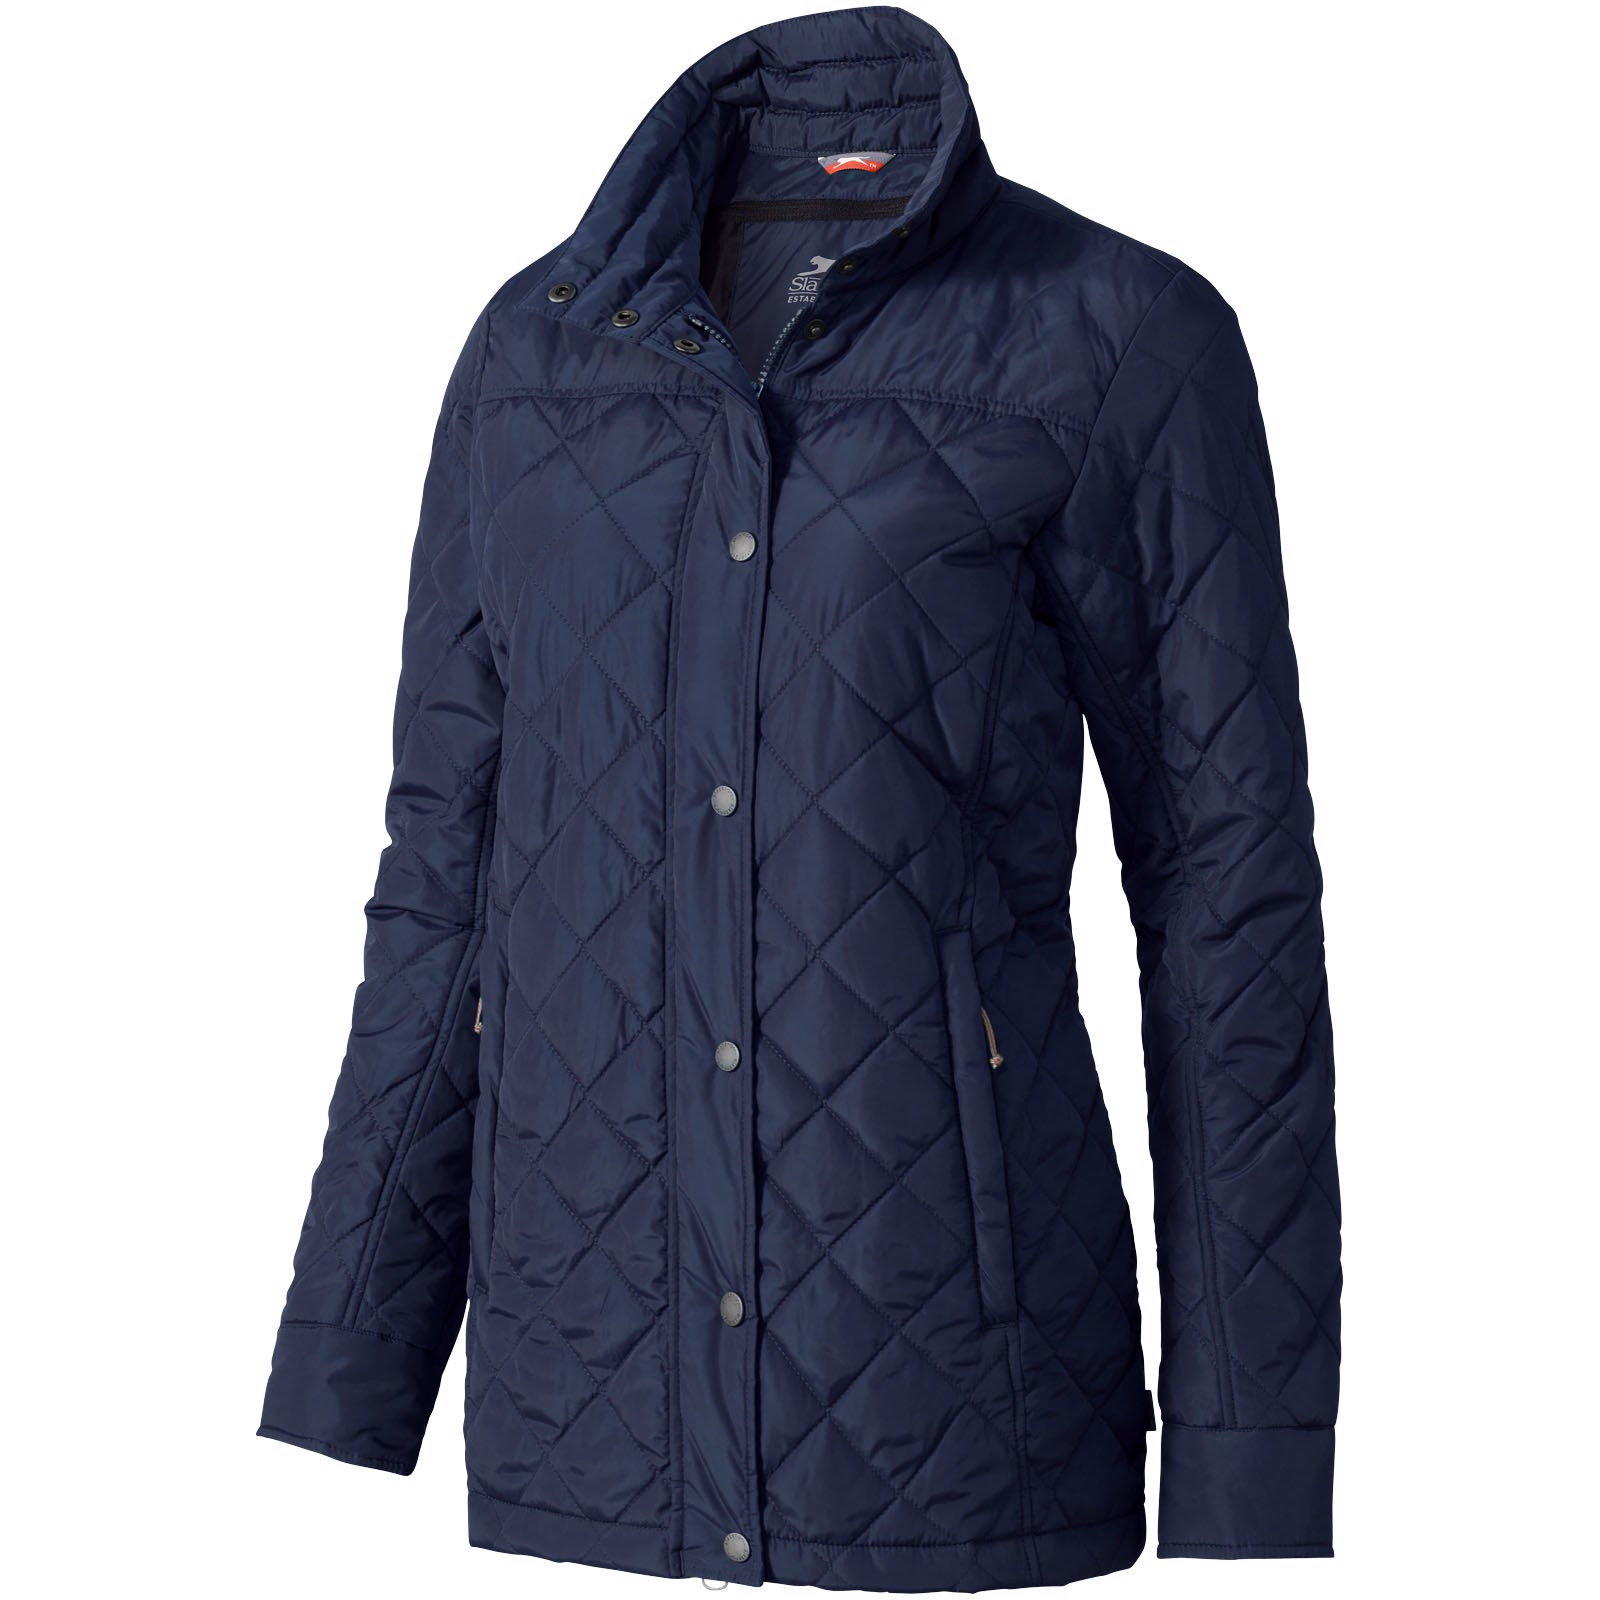 Stance ladies insulated jacket - Navy / XS